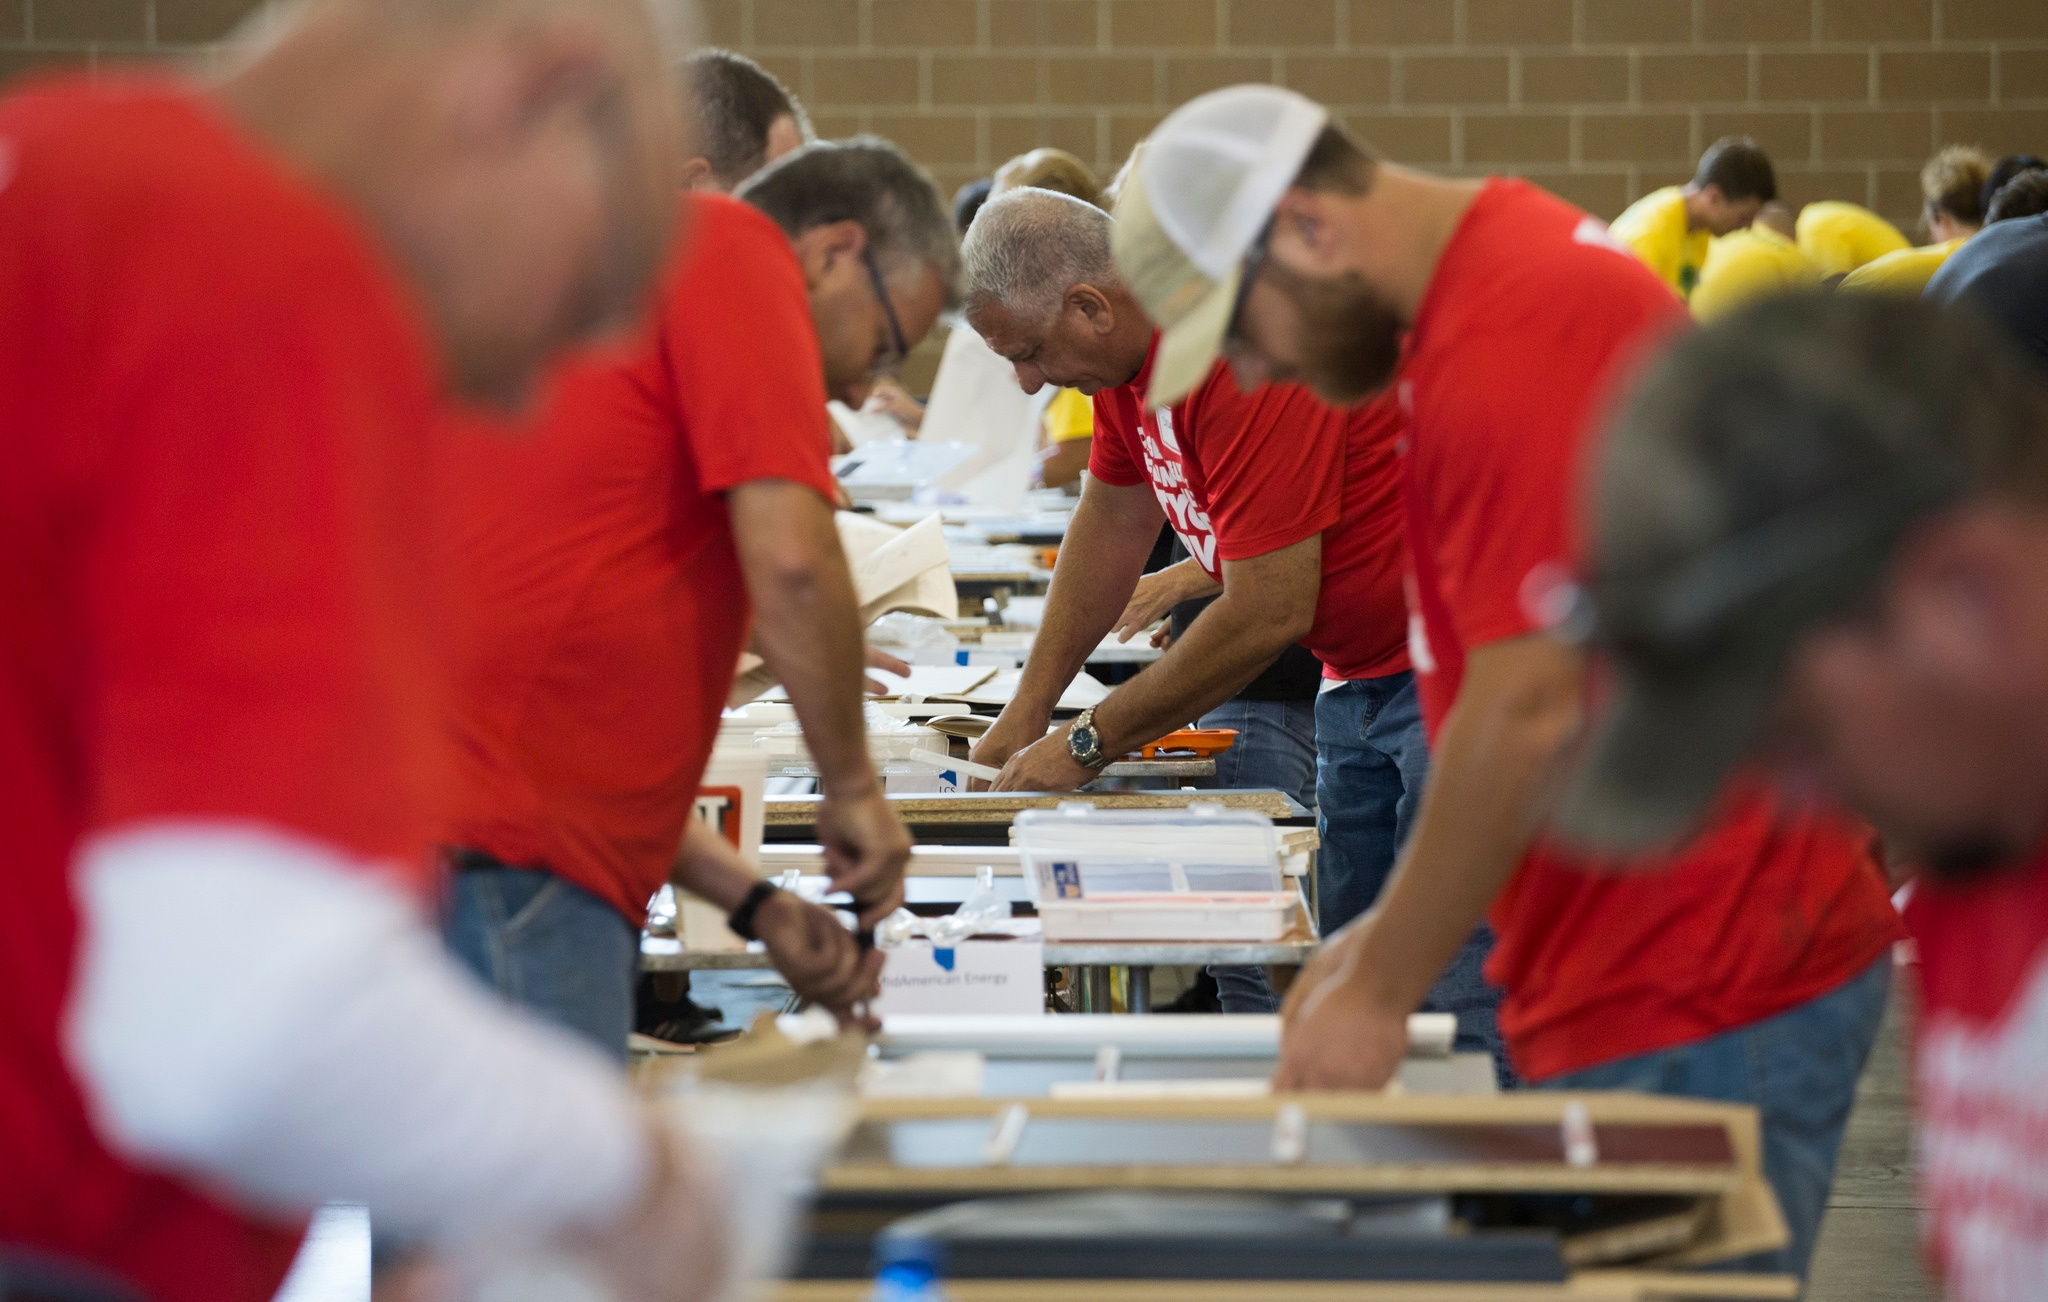 Day of Action unites 4,500 community volunteers